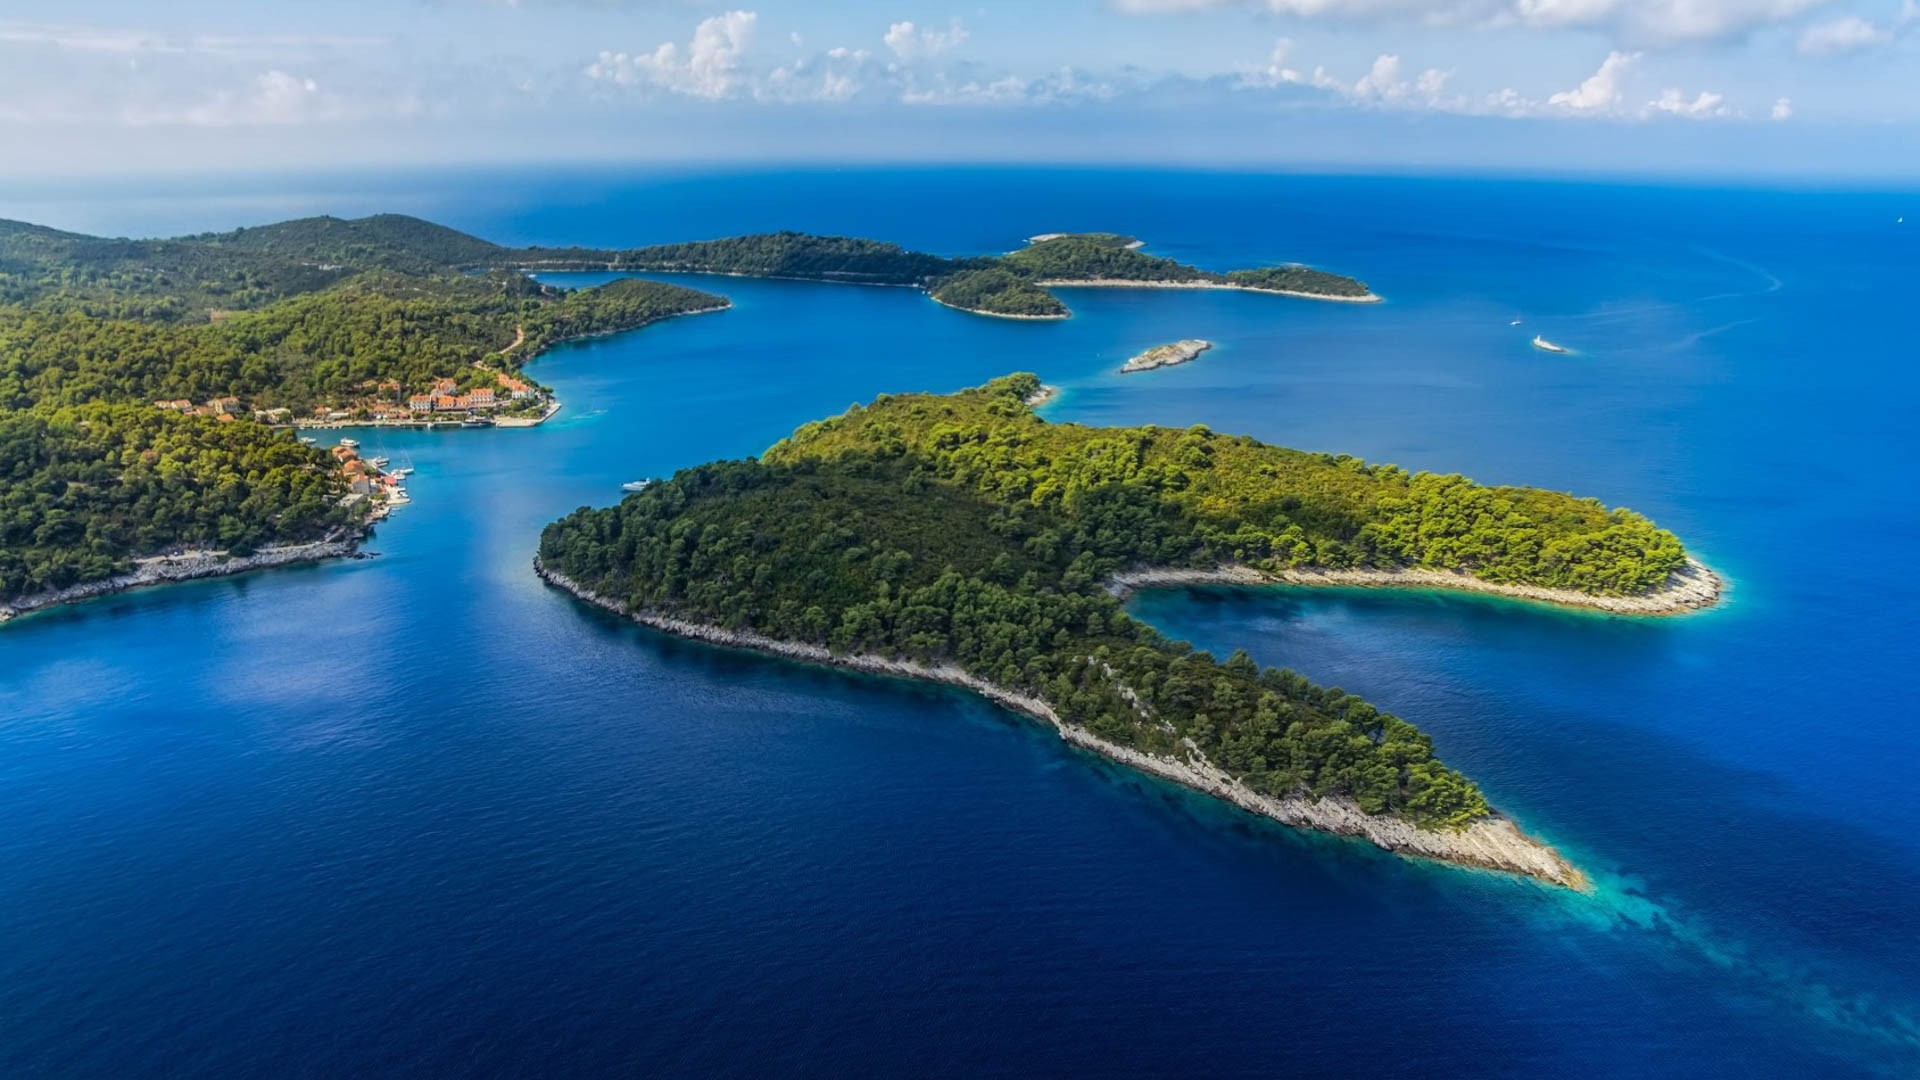 Mljet - Adriatic Sea | Croatia Cruise Croatia Cruise